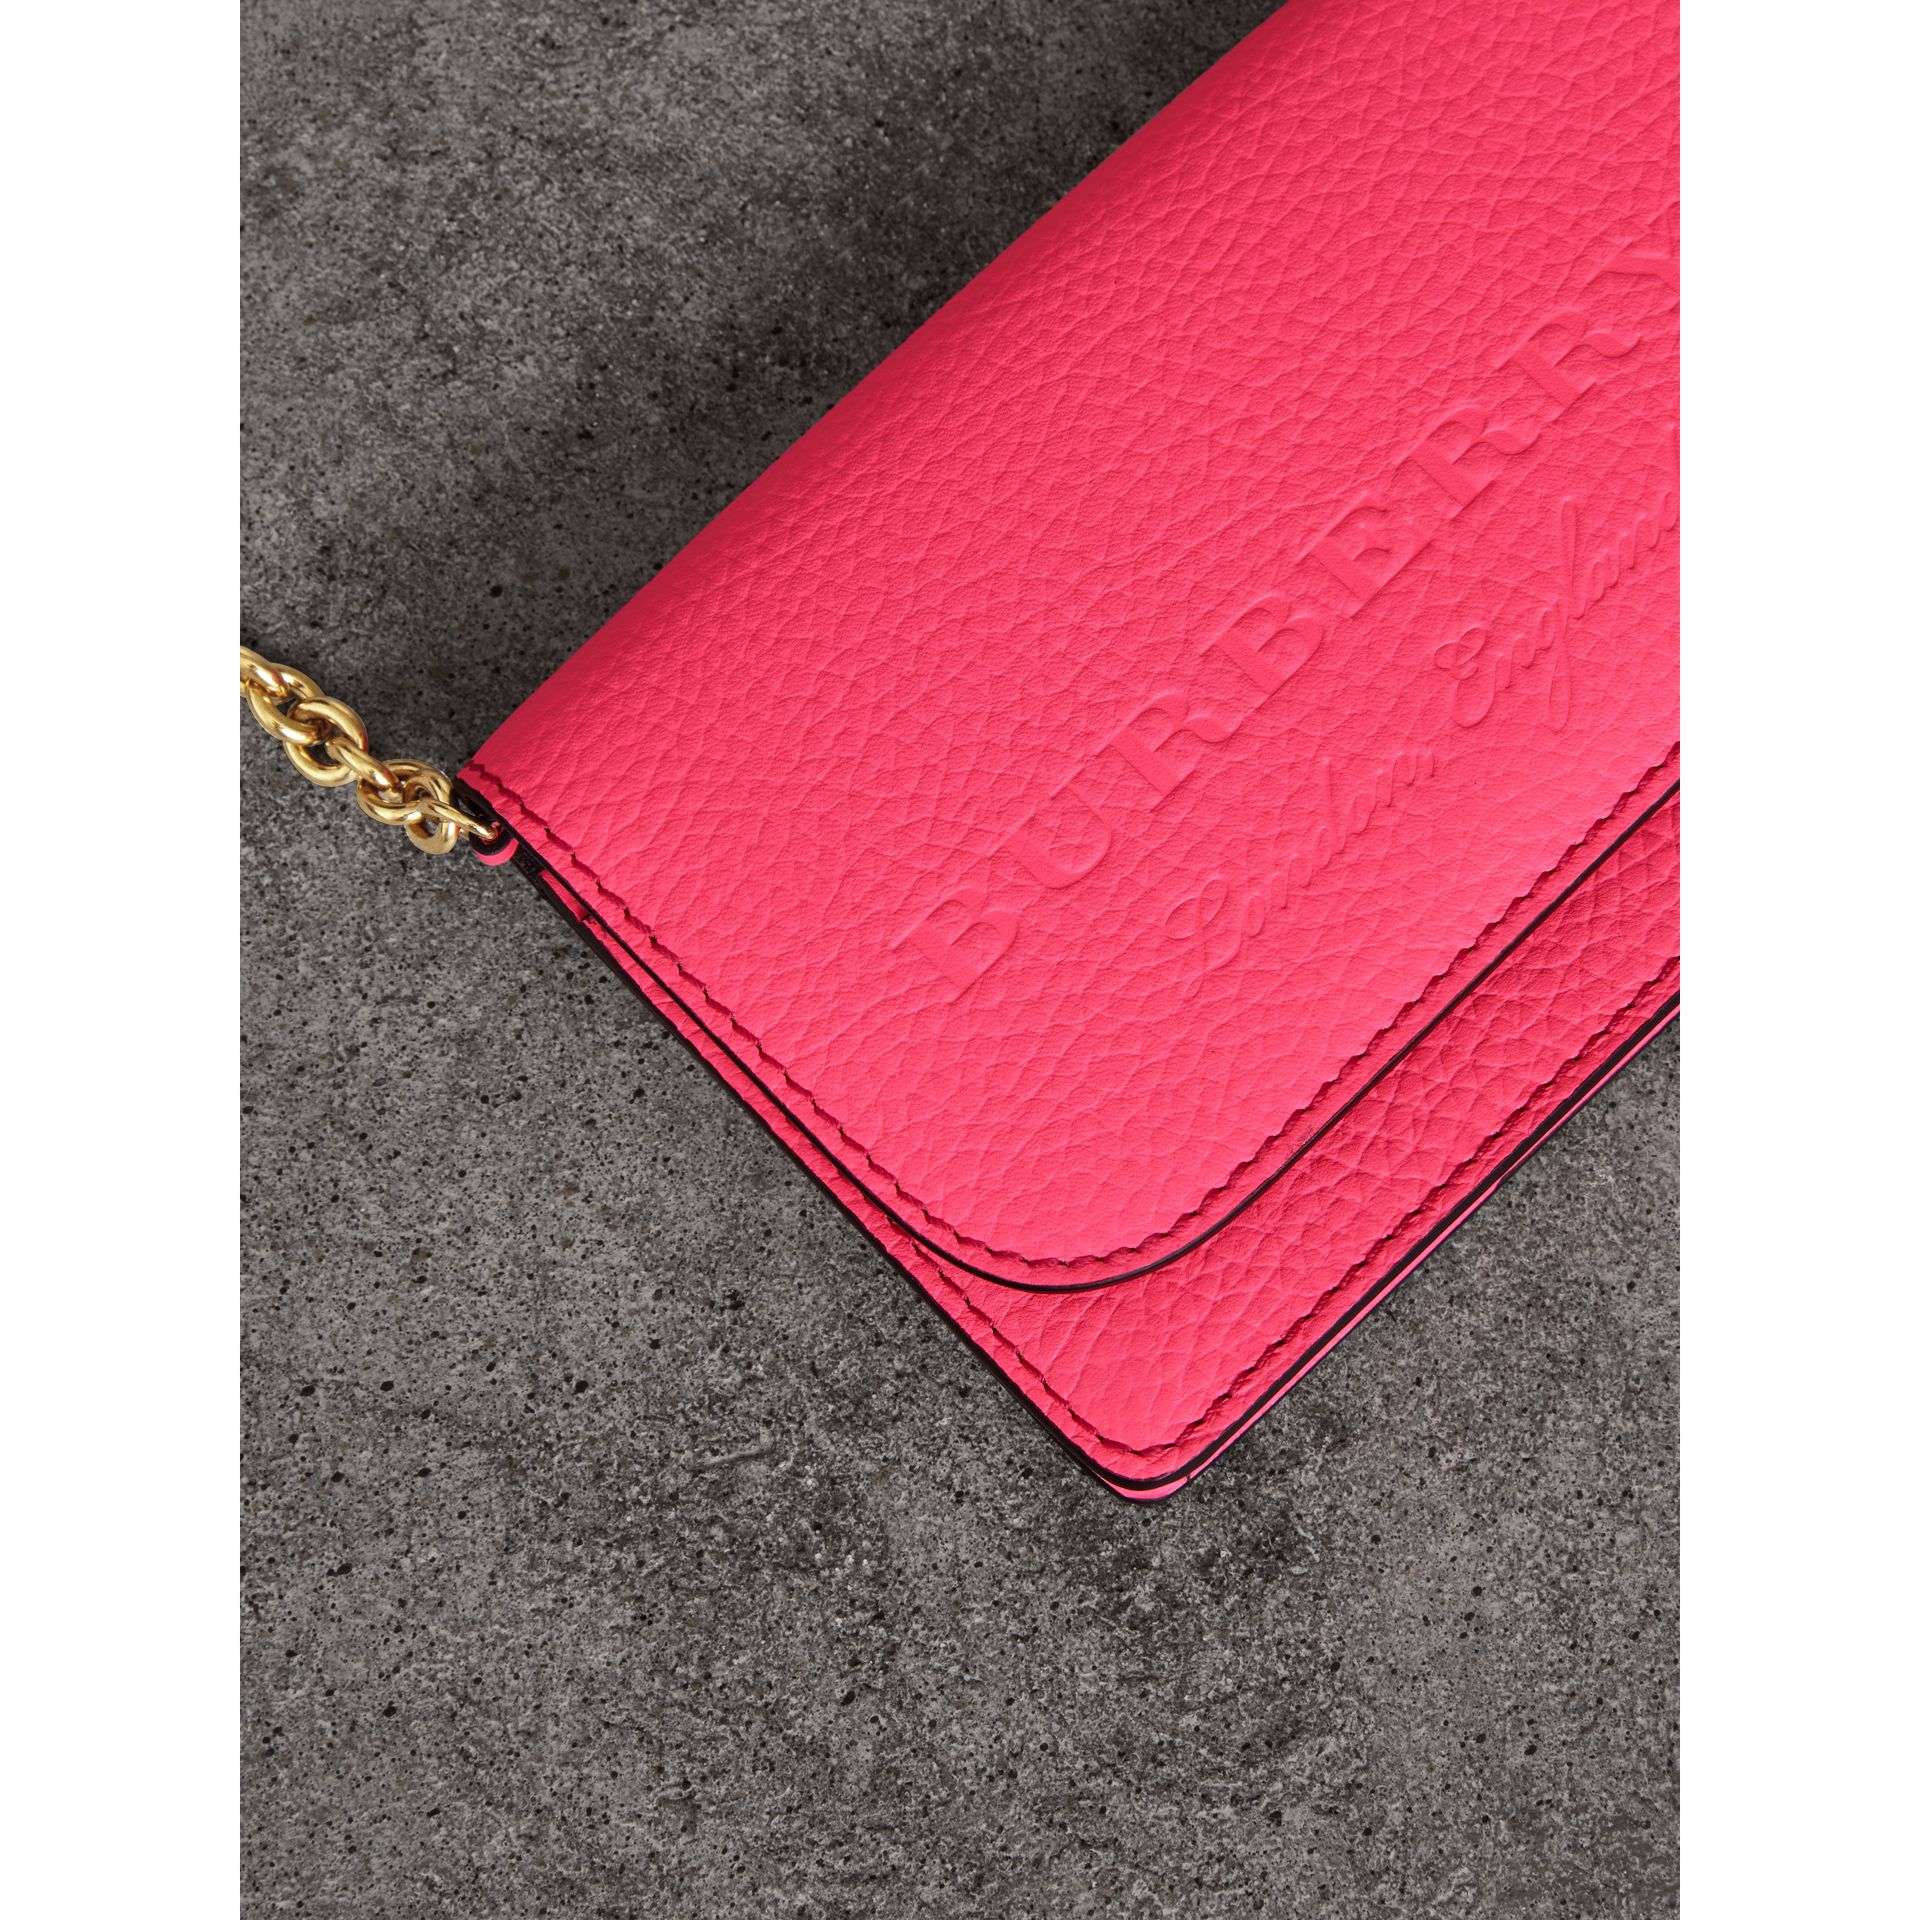 Embossed Leather Wallet with Detachable Strap in Bright Pink - Women | Burberry - gallery image 1